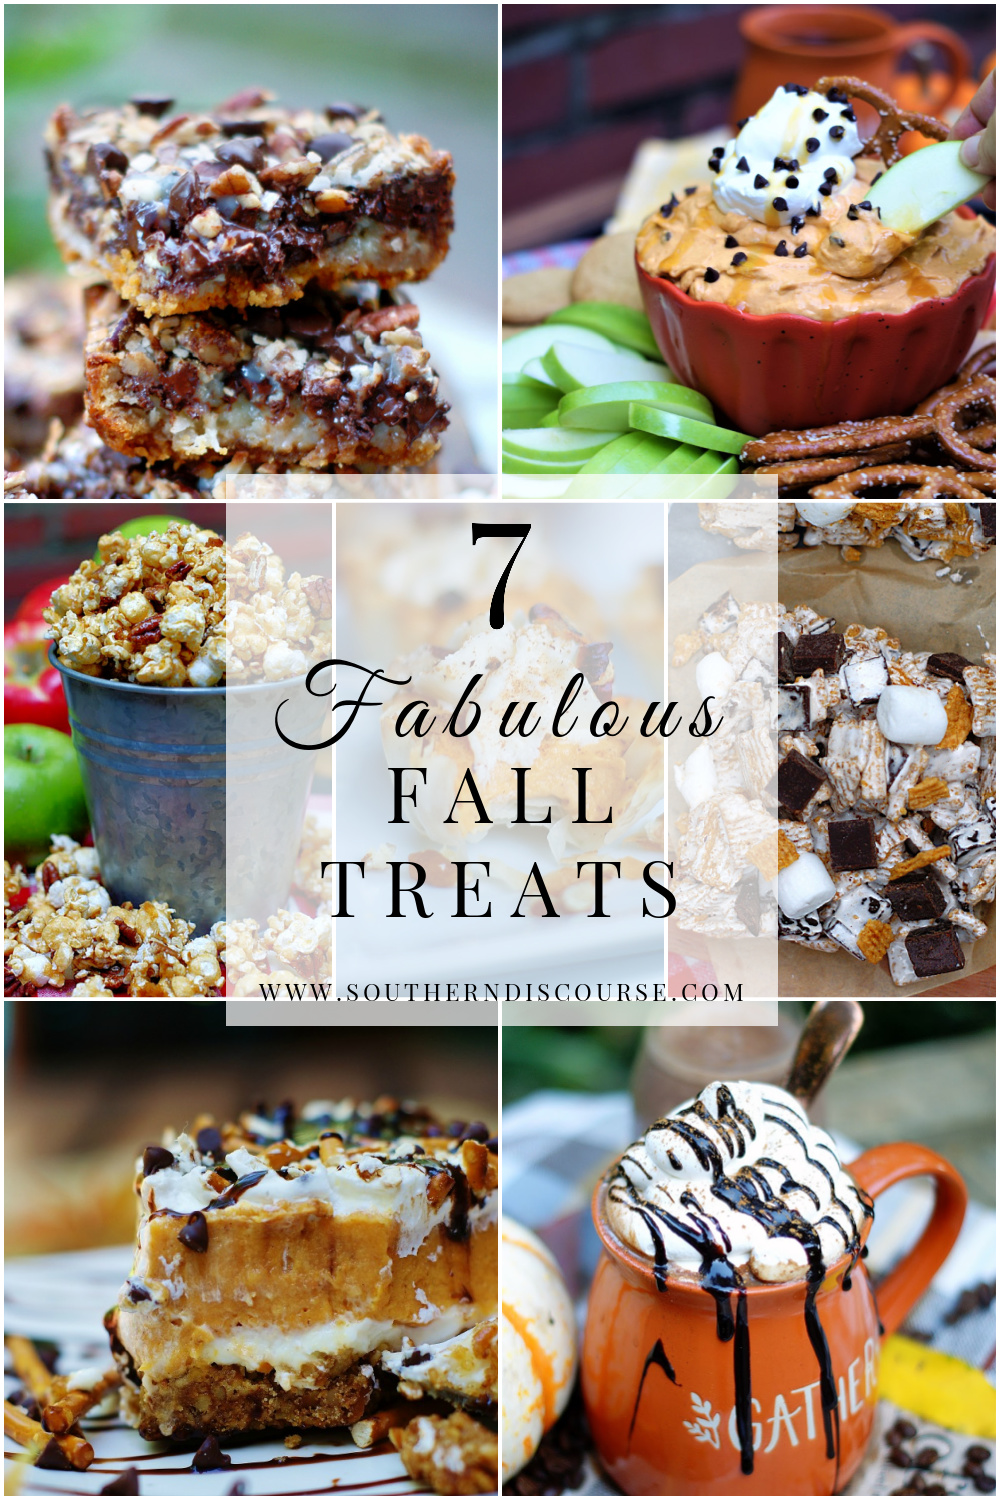 From simple pumpkin dessert dip to apple spice popcorn to no bake s'mores, this collection of fall treats and desserts makes the most of the season! 7 fall treat recipes for easy autumn baking.